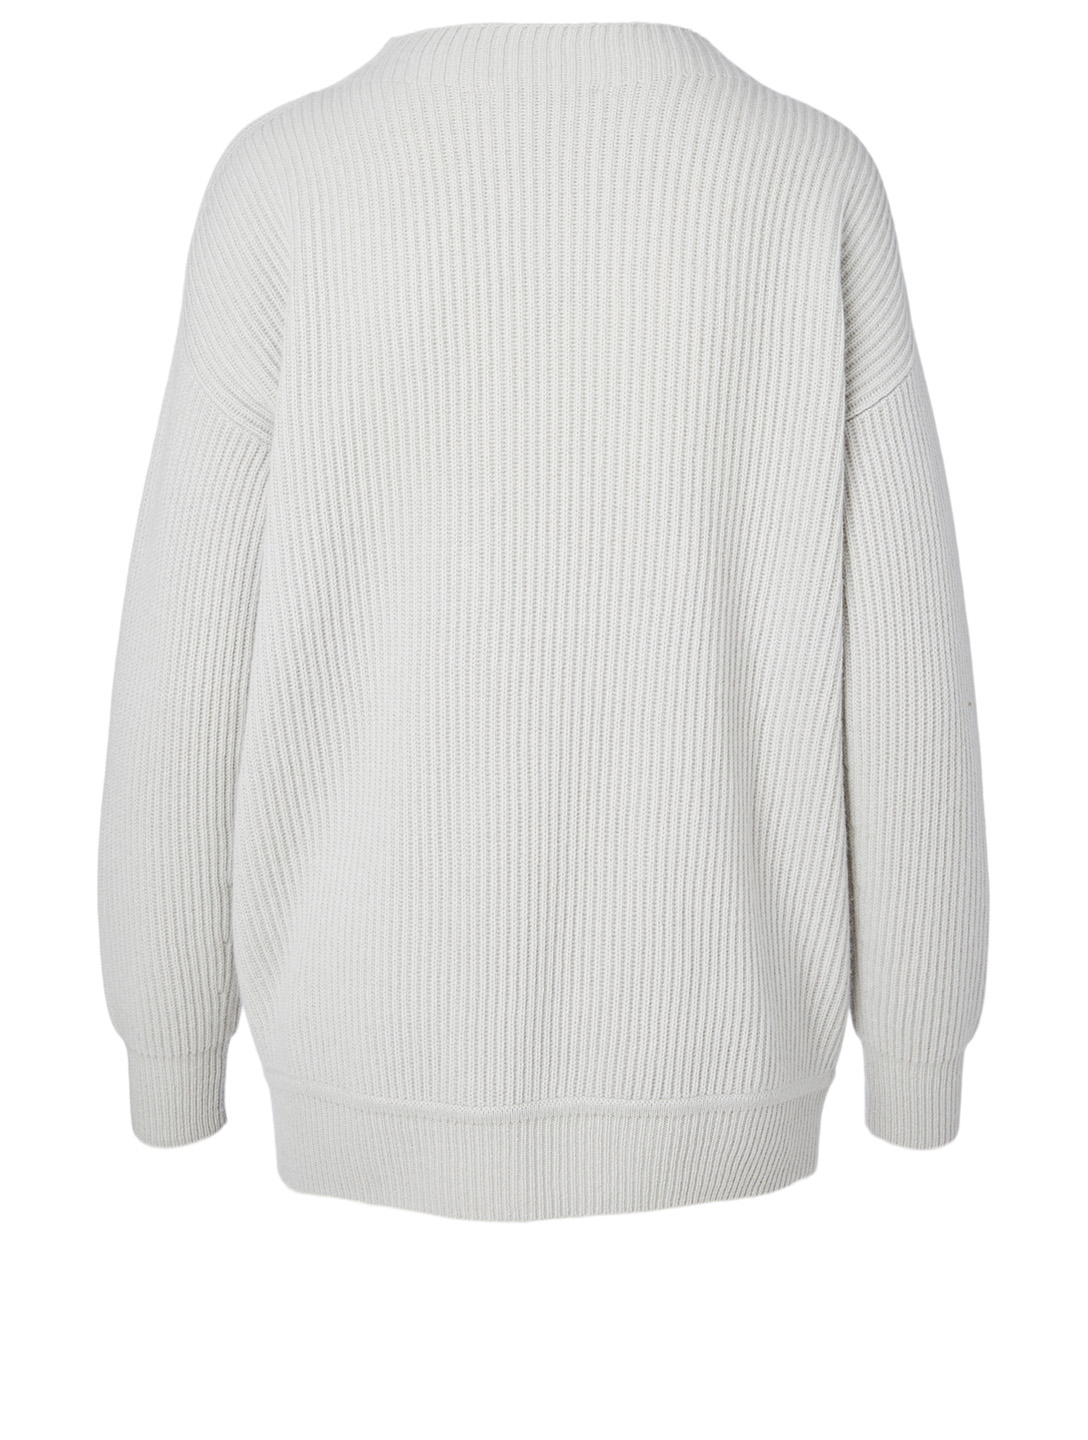 MAX MARA Verace Wool And Cashmere Sweater Women's Grey